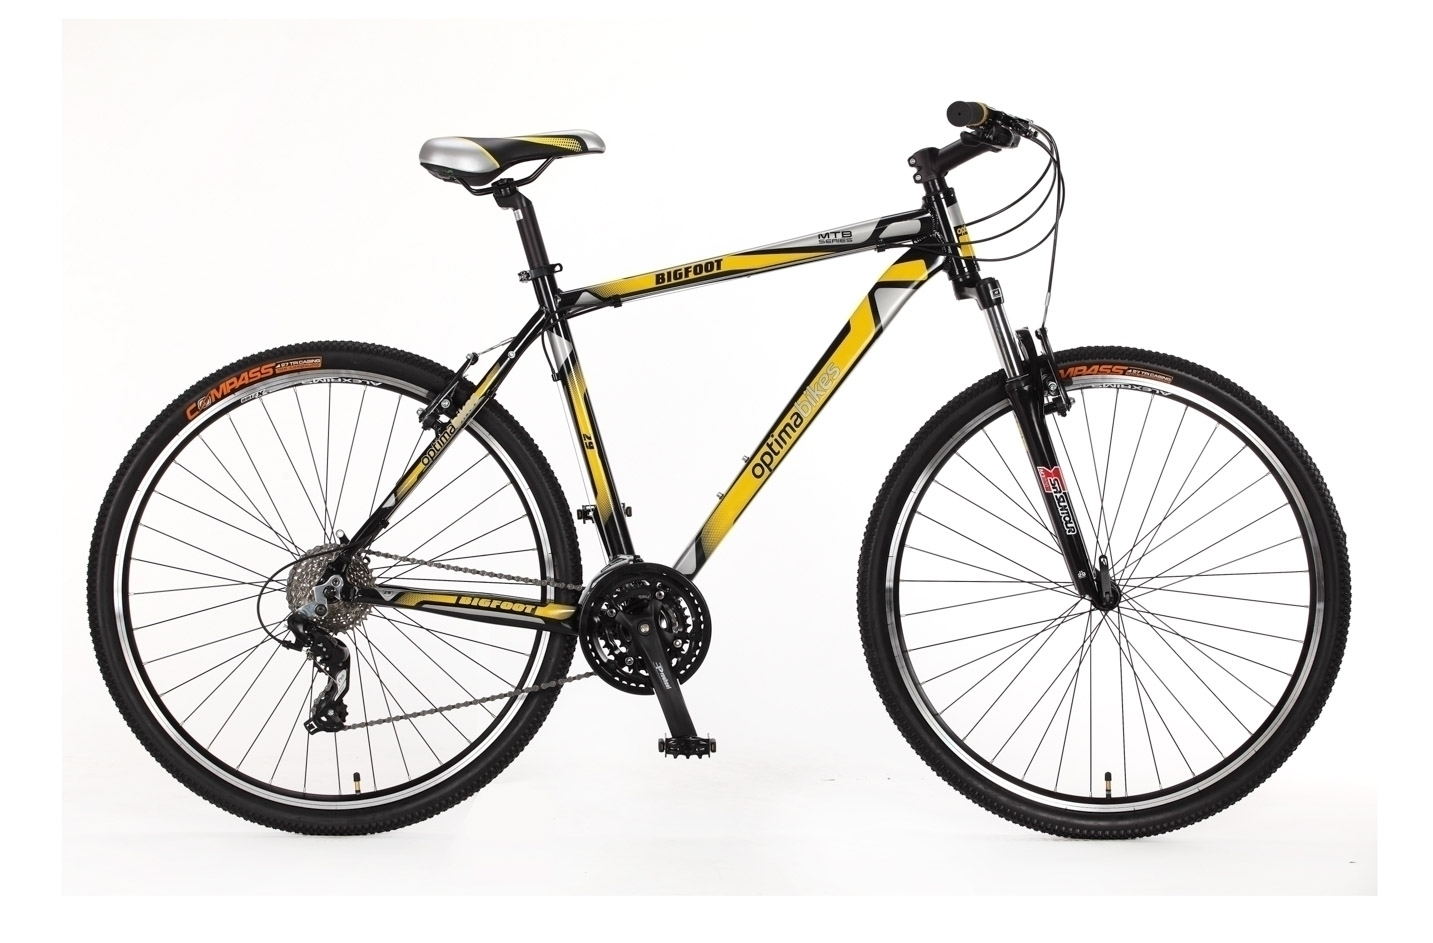 "Велосипед 29"" Optimabikes BIGFOOT 21"" 2015, 185-195 см, 2015, ободные, 29"